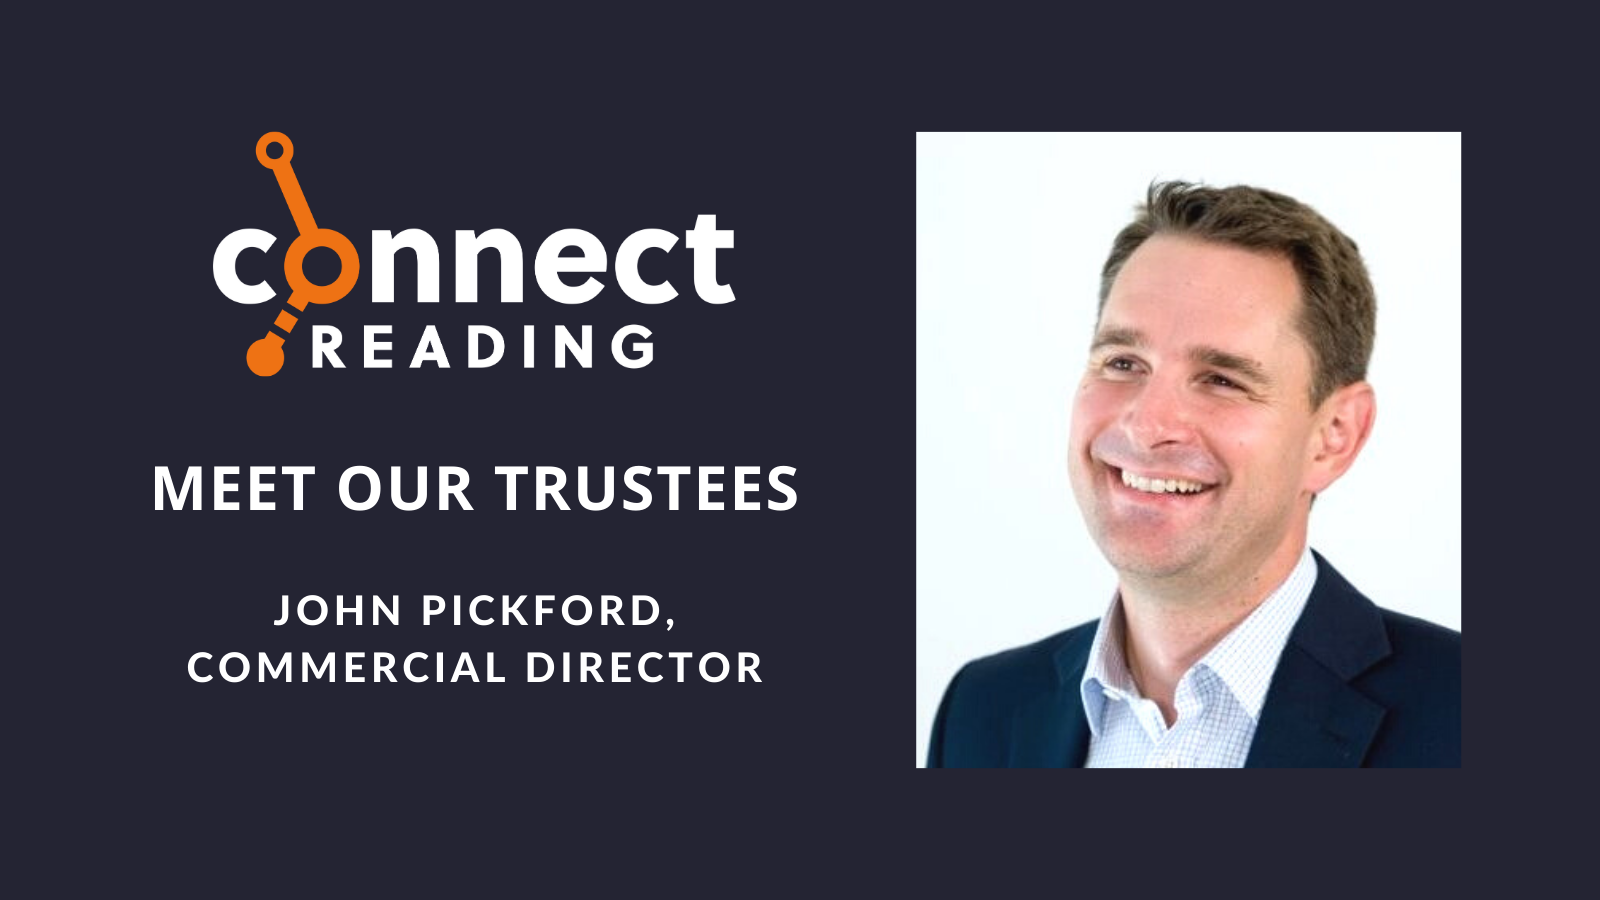 Meet our Trustees: John Pickford